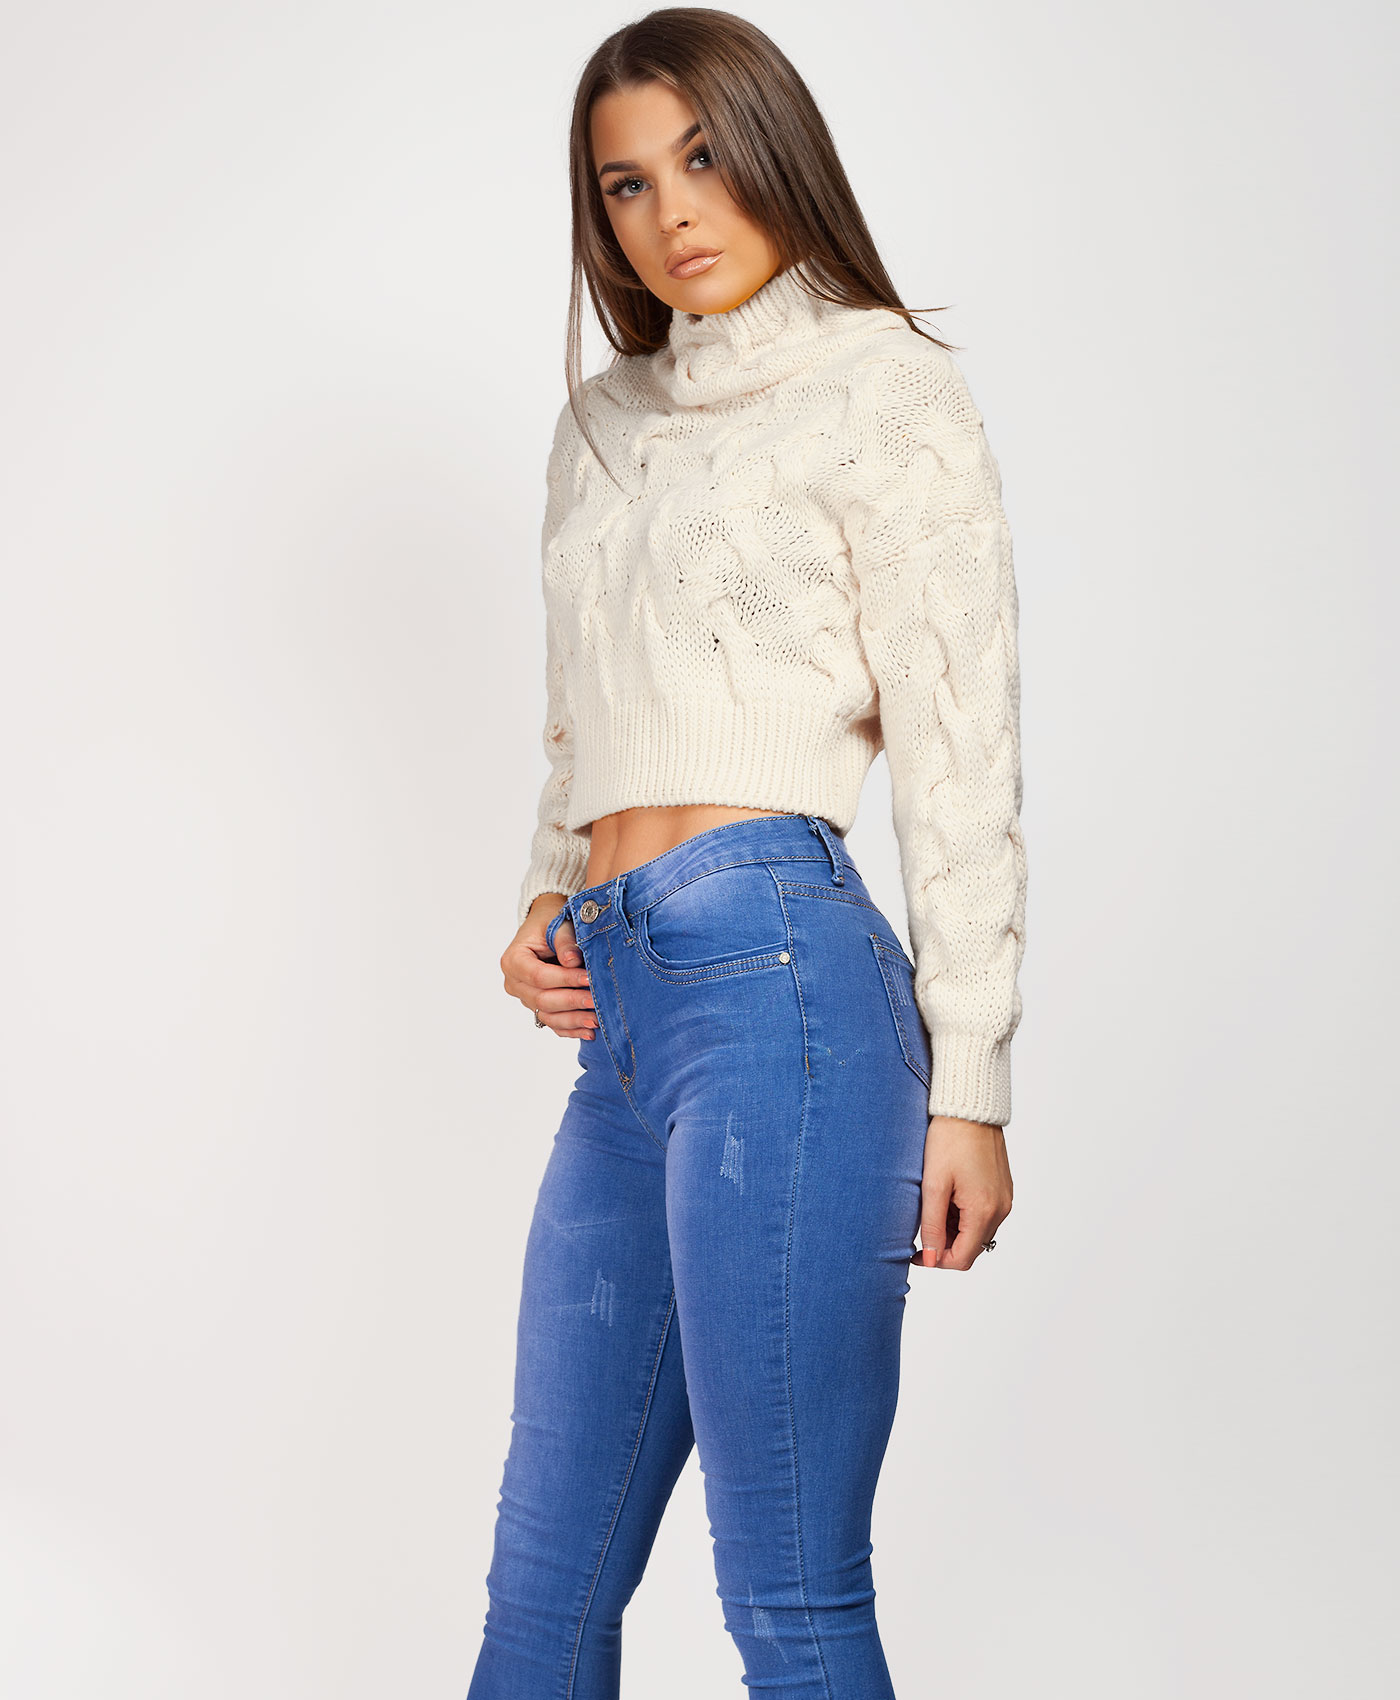 Womens-Ladies-Cable-Knitted-High-Neck-Cropped-Top-Pullover-Sweater-Chunky-Jumper thumbnail 27